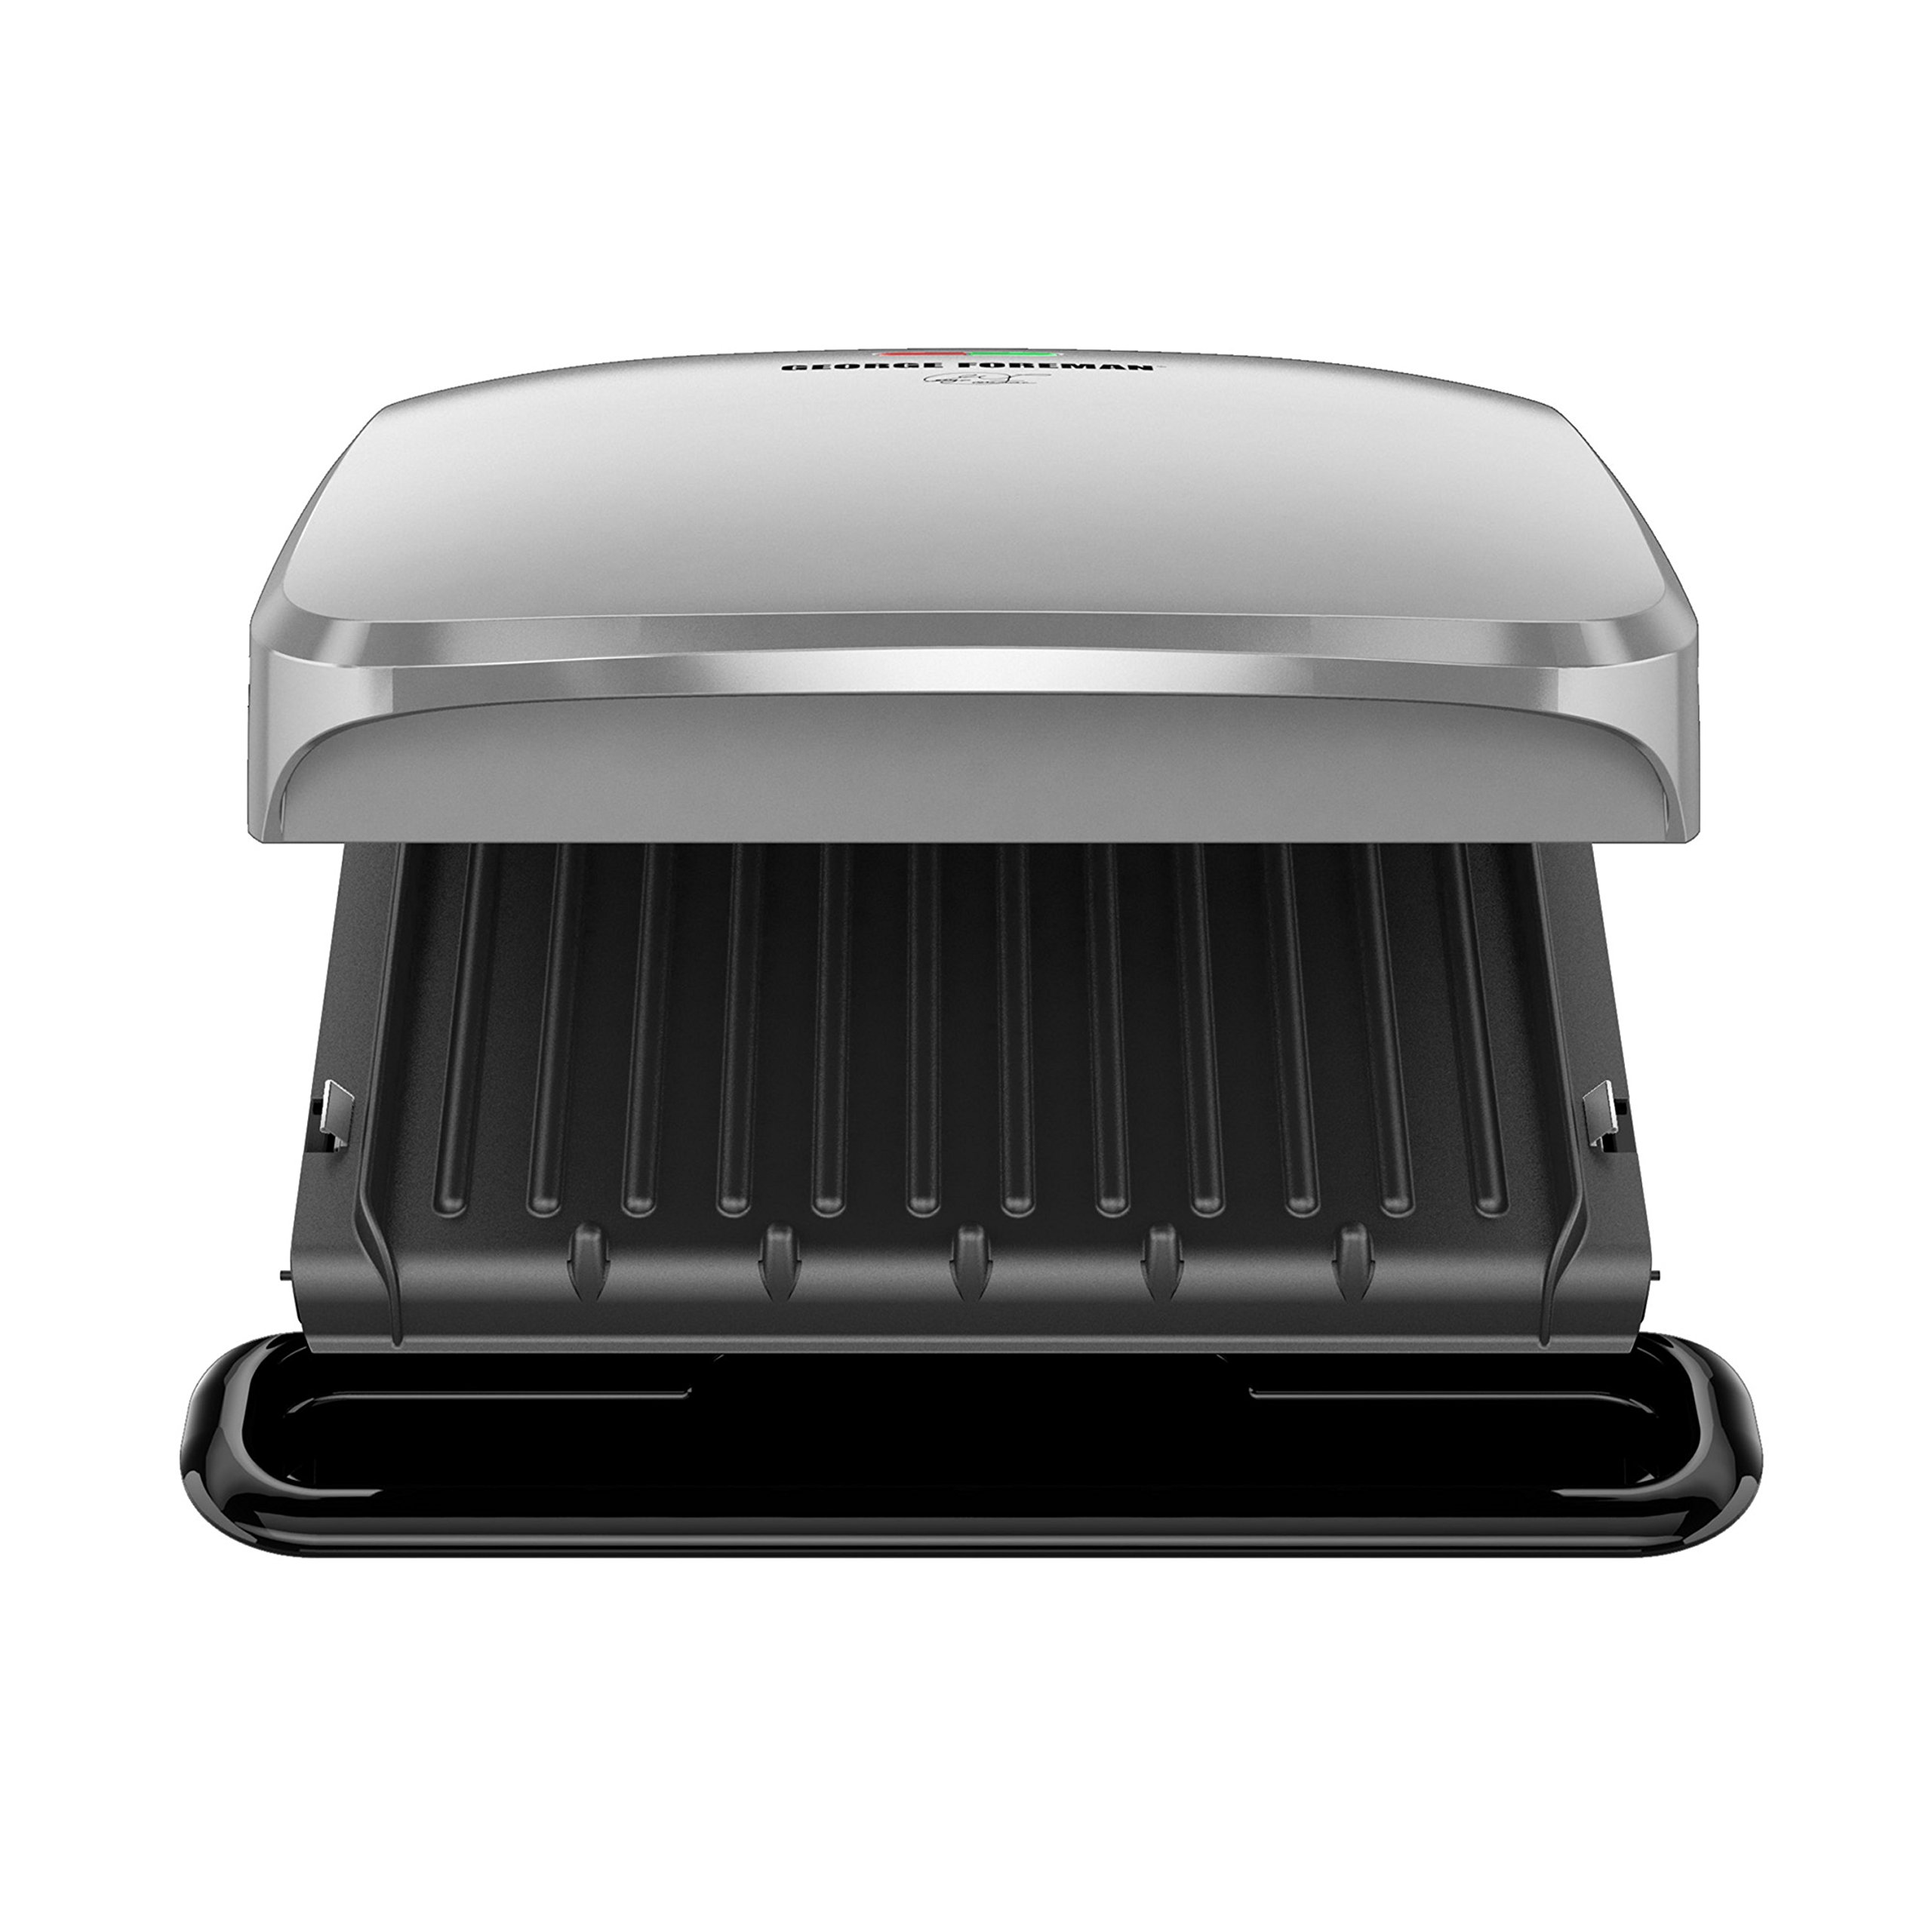 George Foreman 4-Serving Removable Plate Grill and Panini Press, Platinum, GRP3060P by George Foreman (Image #8)